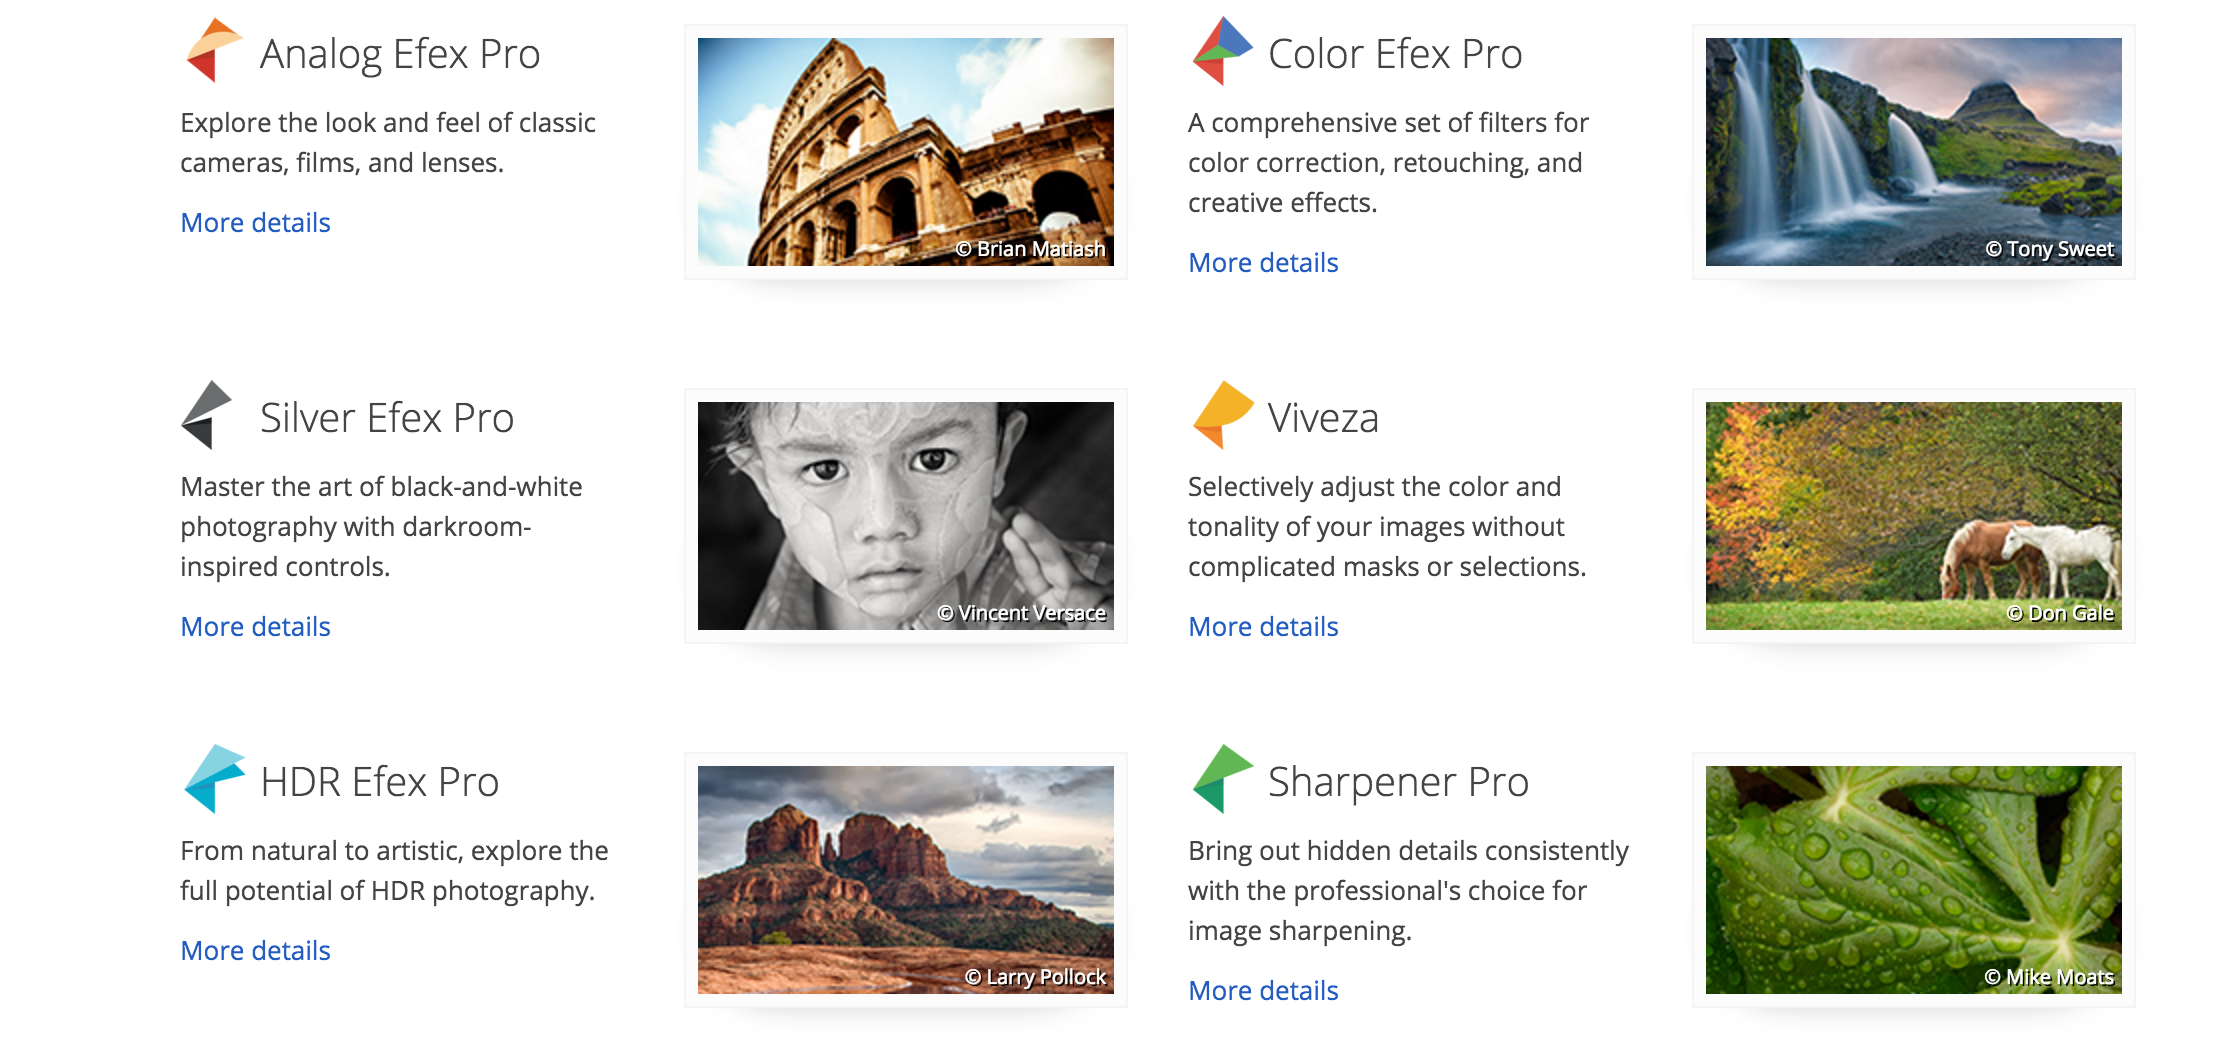 The Google Nik plugins can be added on Photoshop, Lightroom or Aperture.